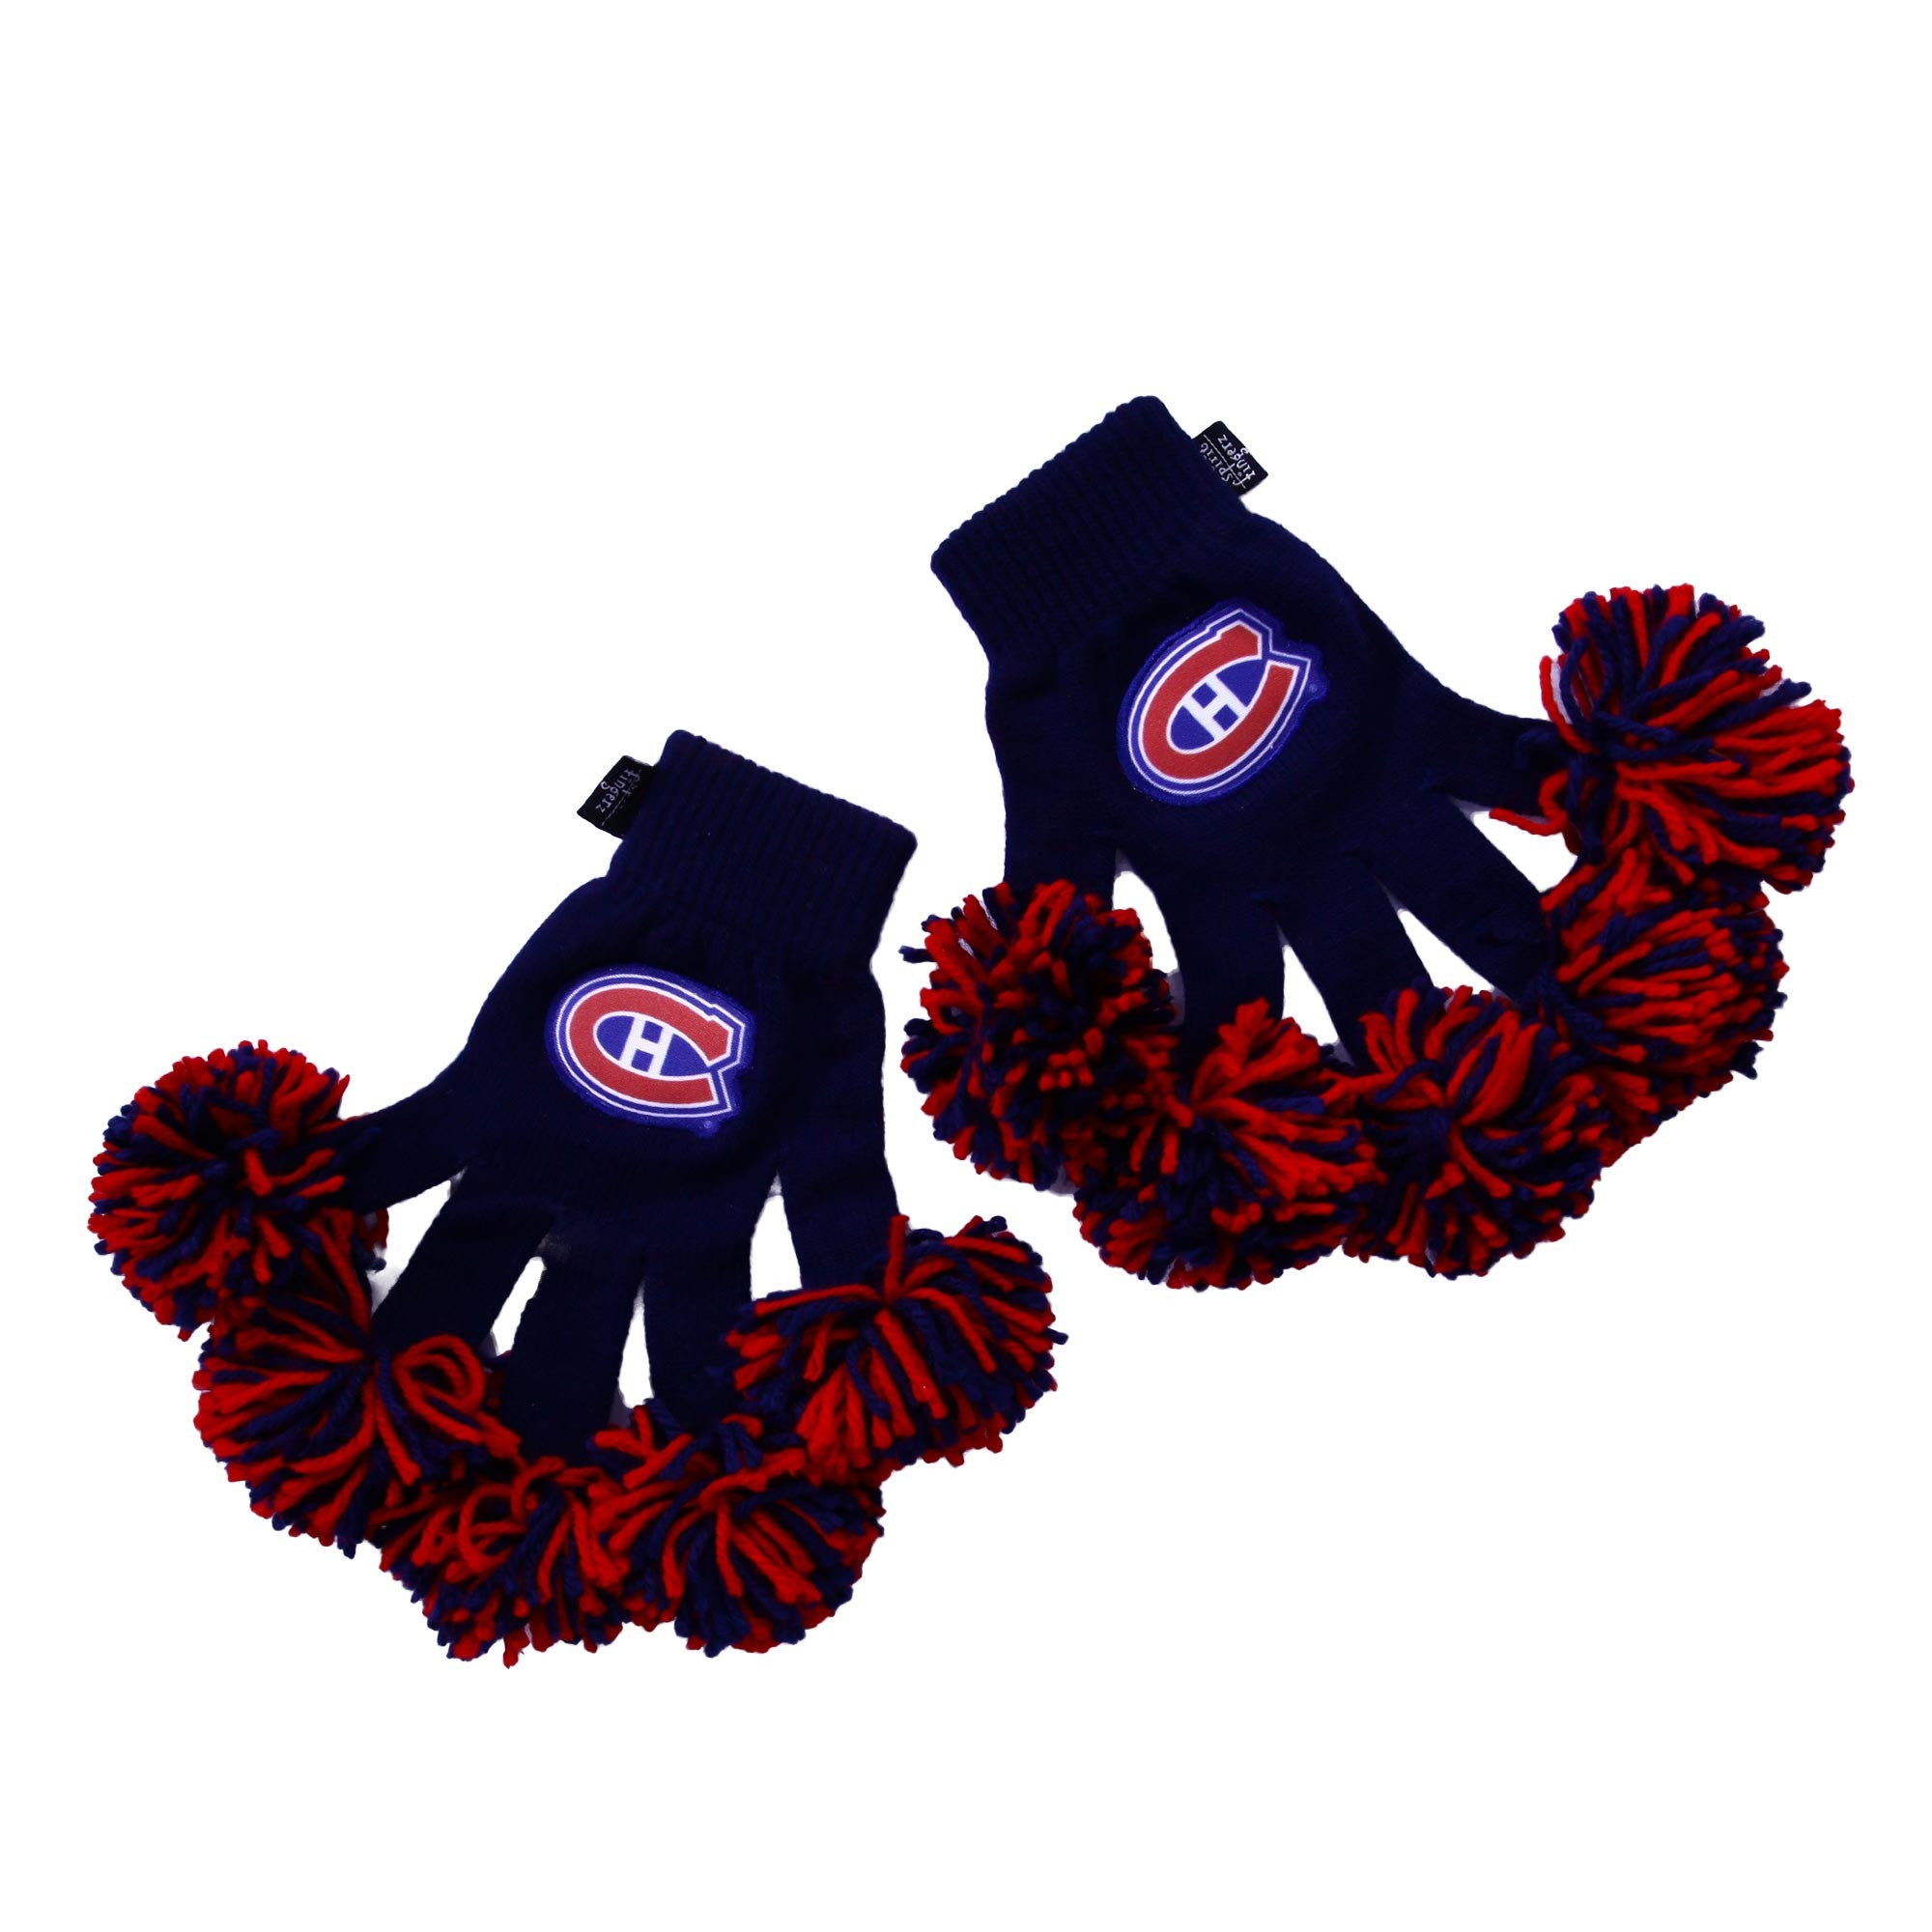 Montreal Canadiens NHL Spirit Fingerz Cheerleading Pom-Pom Gloves